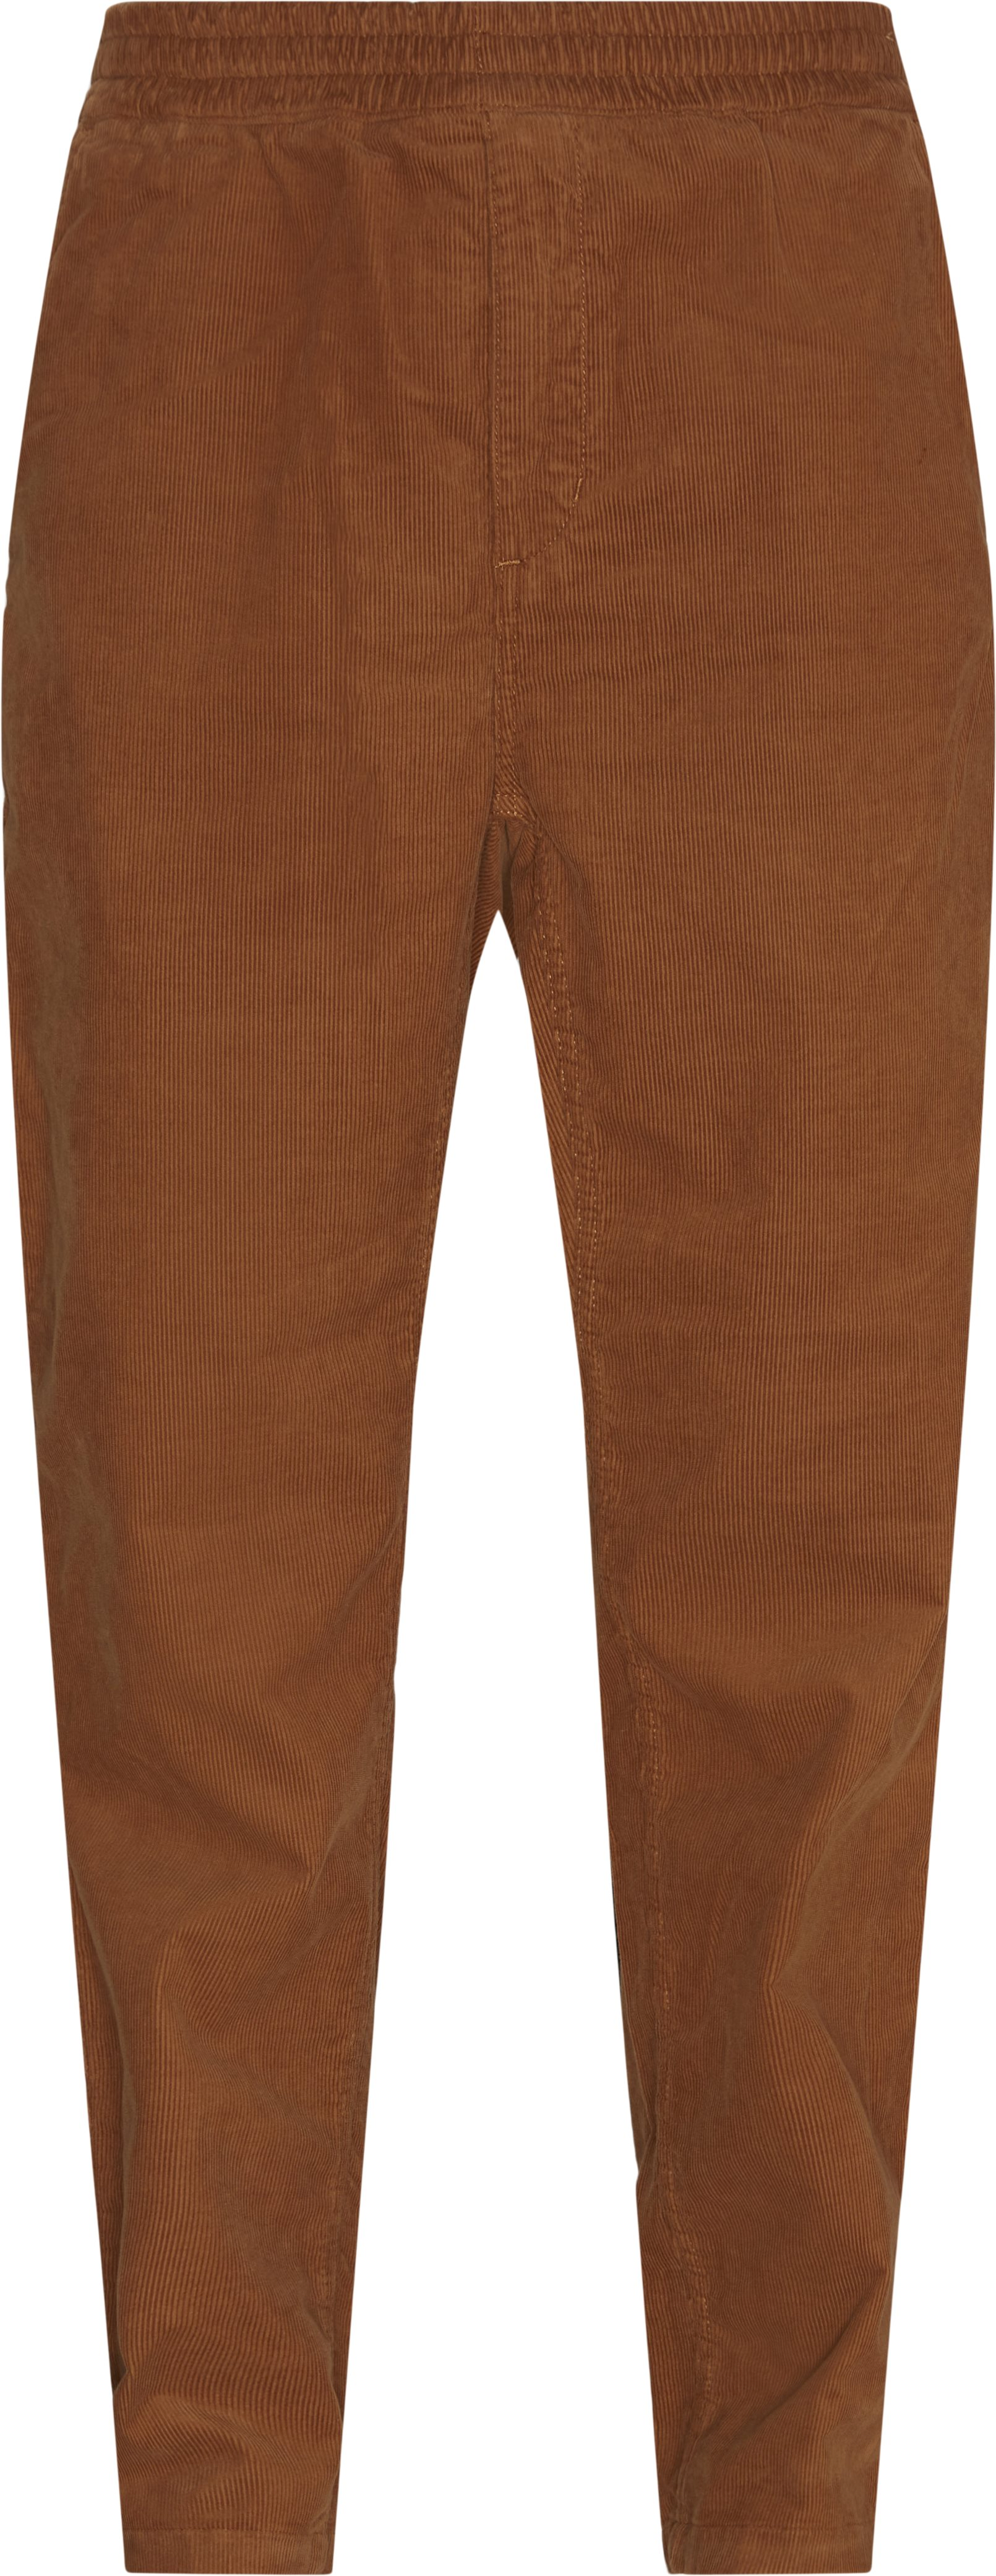 Trousers - Tapered fit - Brown